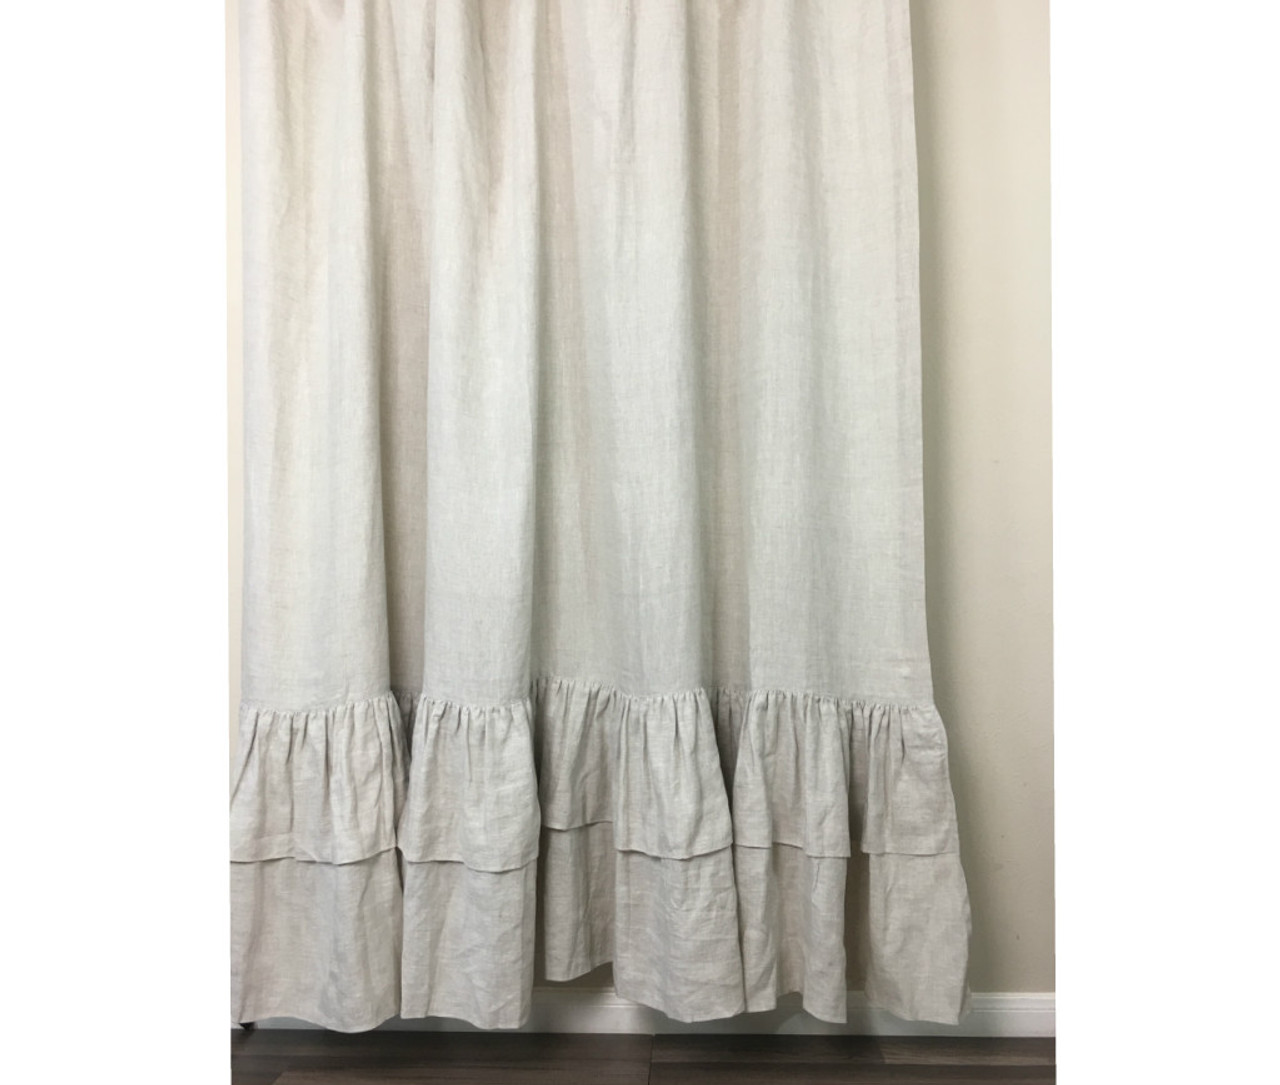 Natural Linen Curtains With Two Tiered Of Mermaid Long Ruffles Medium Weight